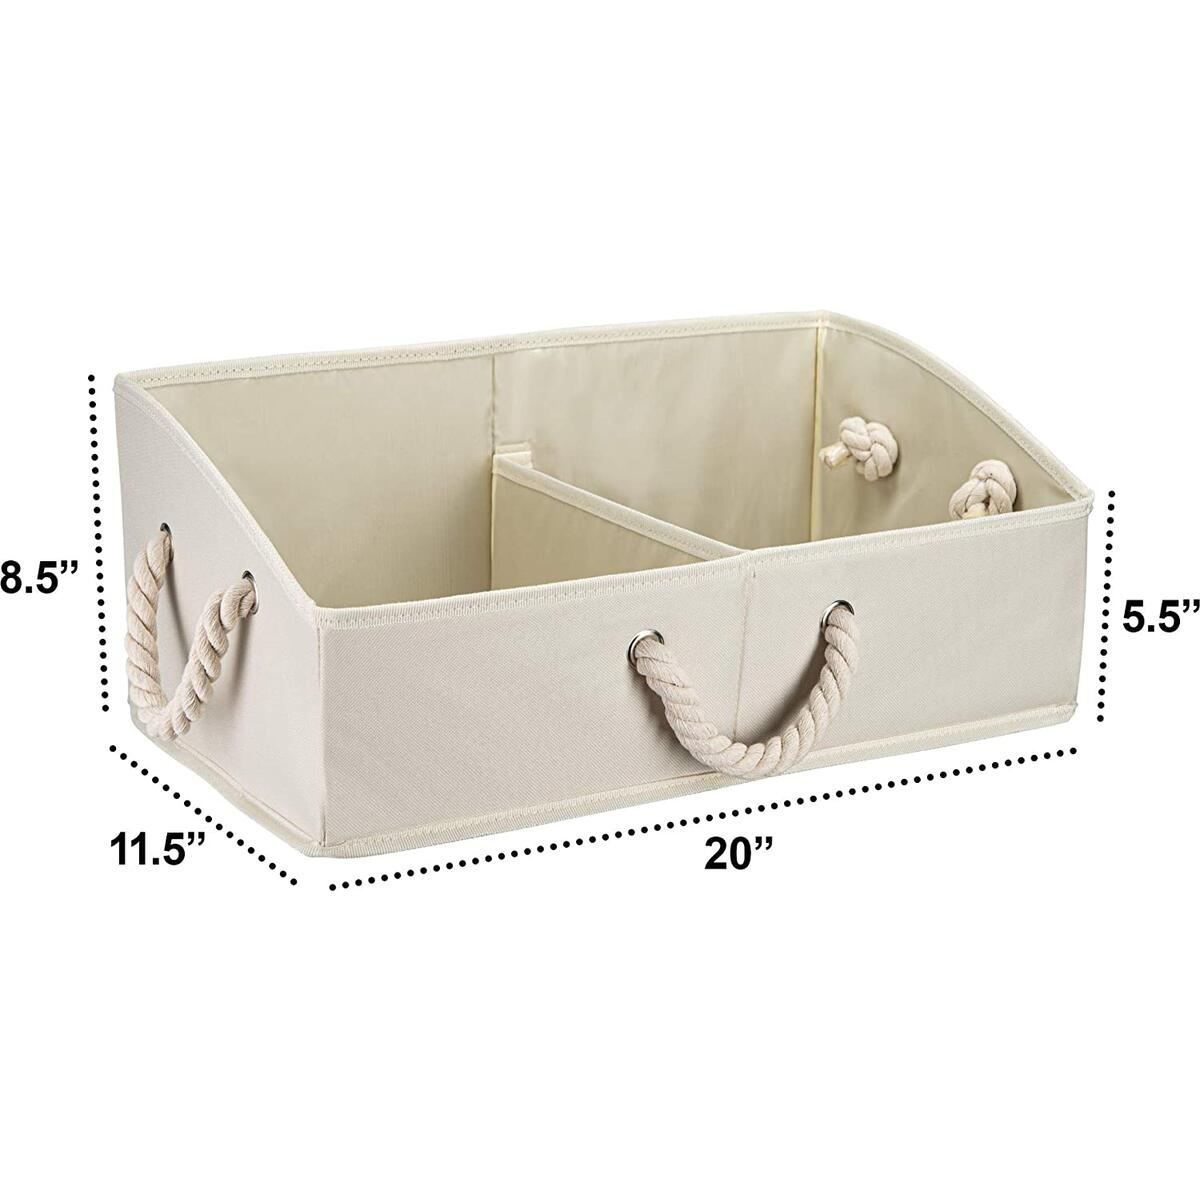 Organize Star Storage Bin-Set of 3 Large Decorative Foldable Fabric Trapezoid Basket with Cotton Rope Handle, Removable Divider, Collapsible Boxes for Closet, Shelves, Clothes Baby Toys Linen